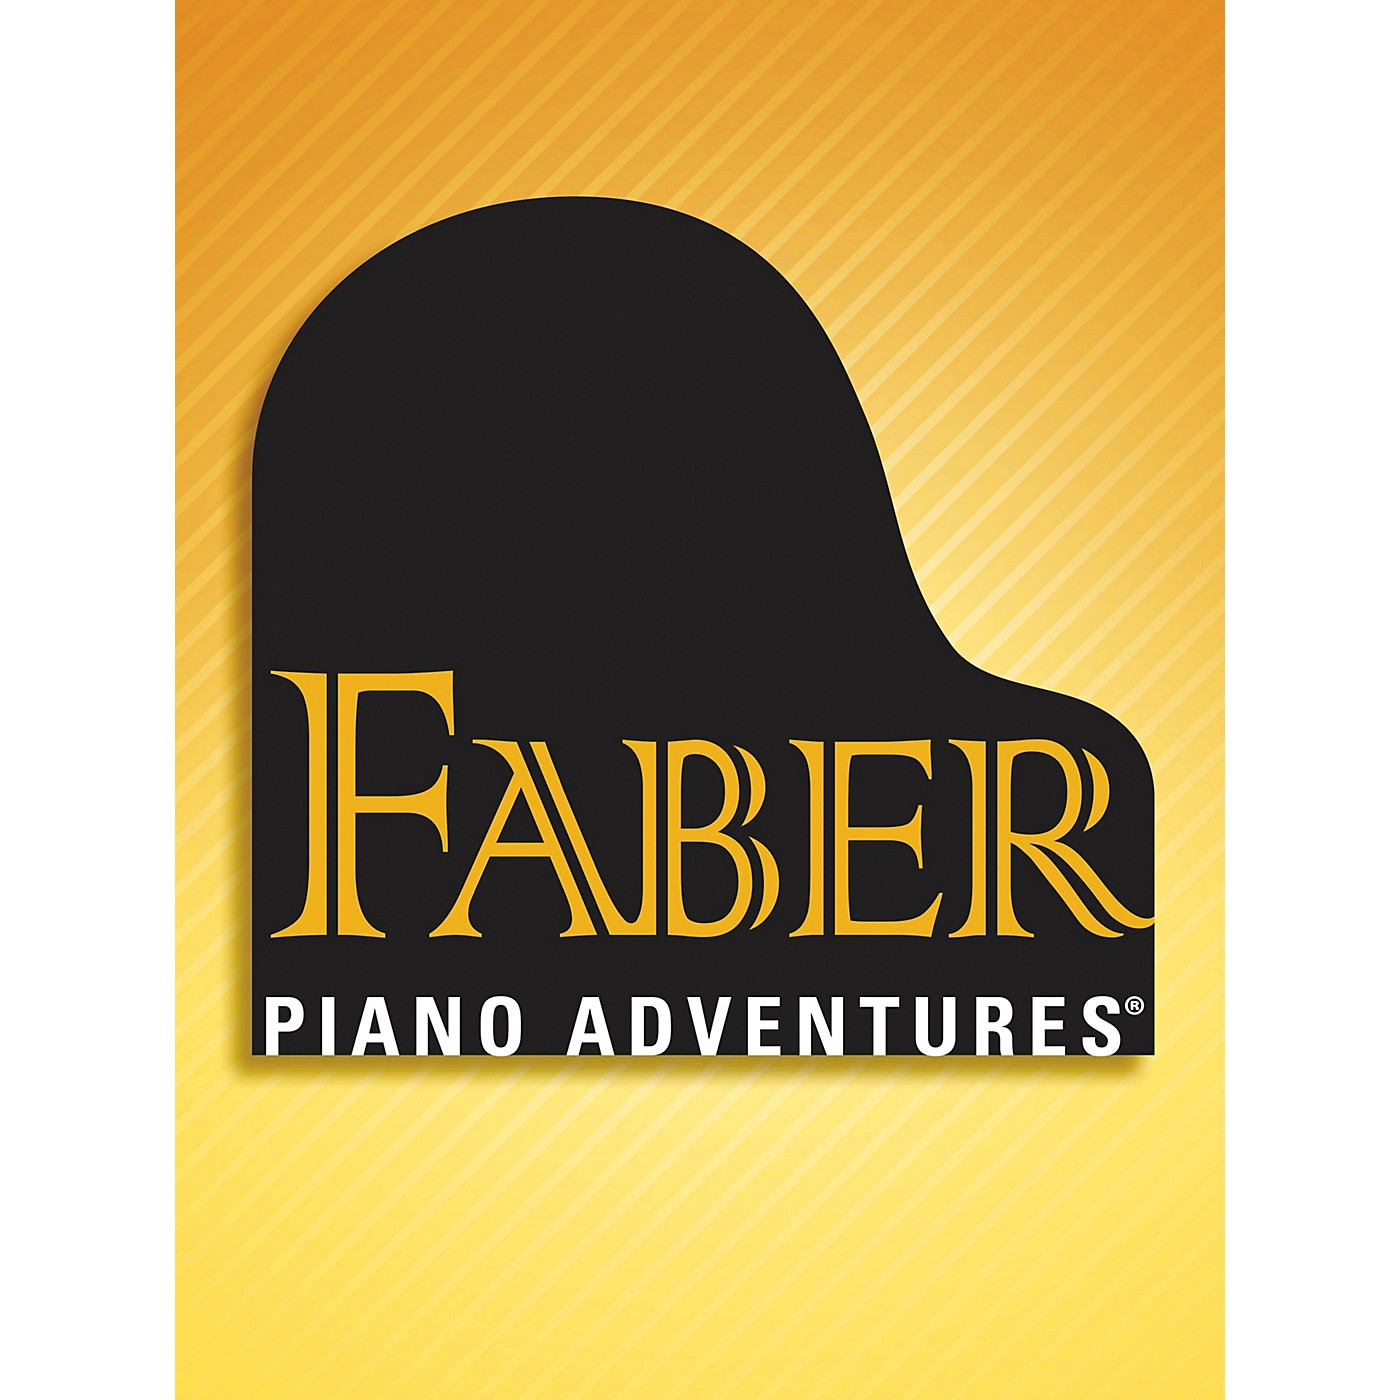 Faber Piano Adventures Primer Level - Popular Repertoire CD (Piano Adventures) Faber Piano Adventures Series CD by Nancy Faber thumbnail